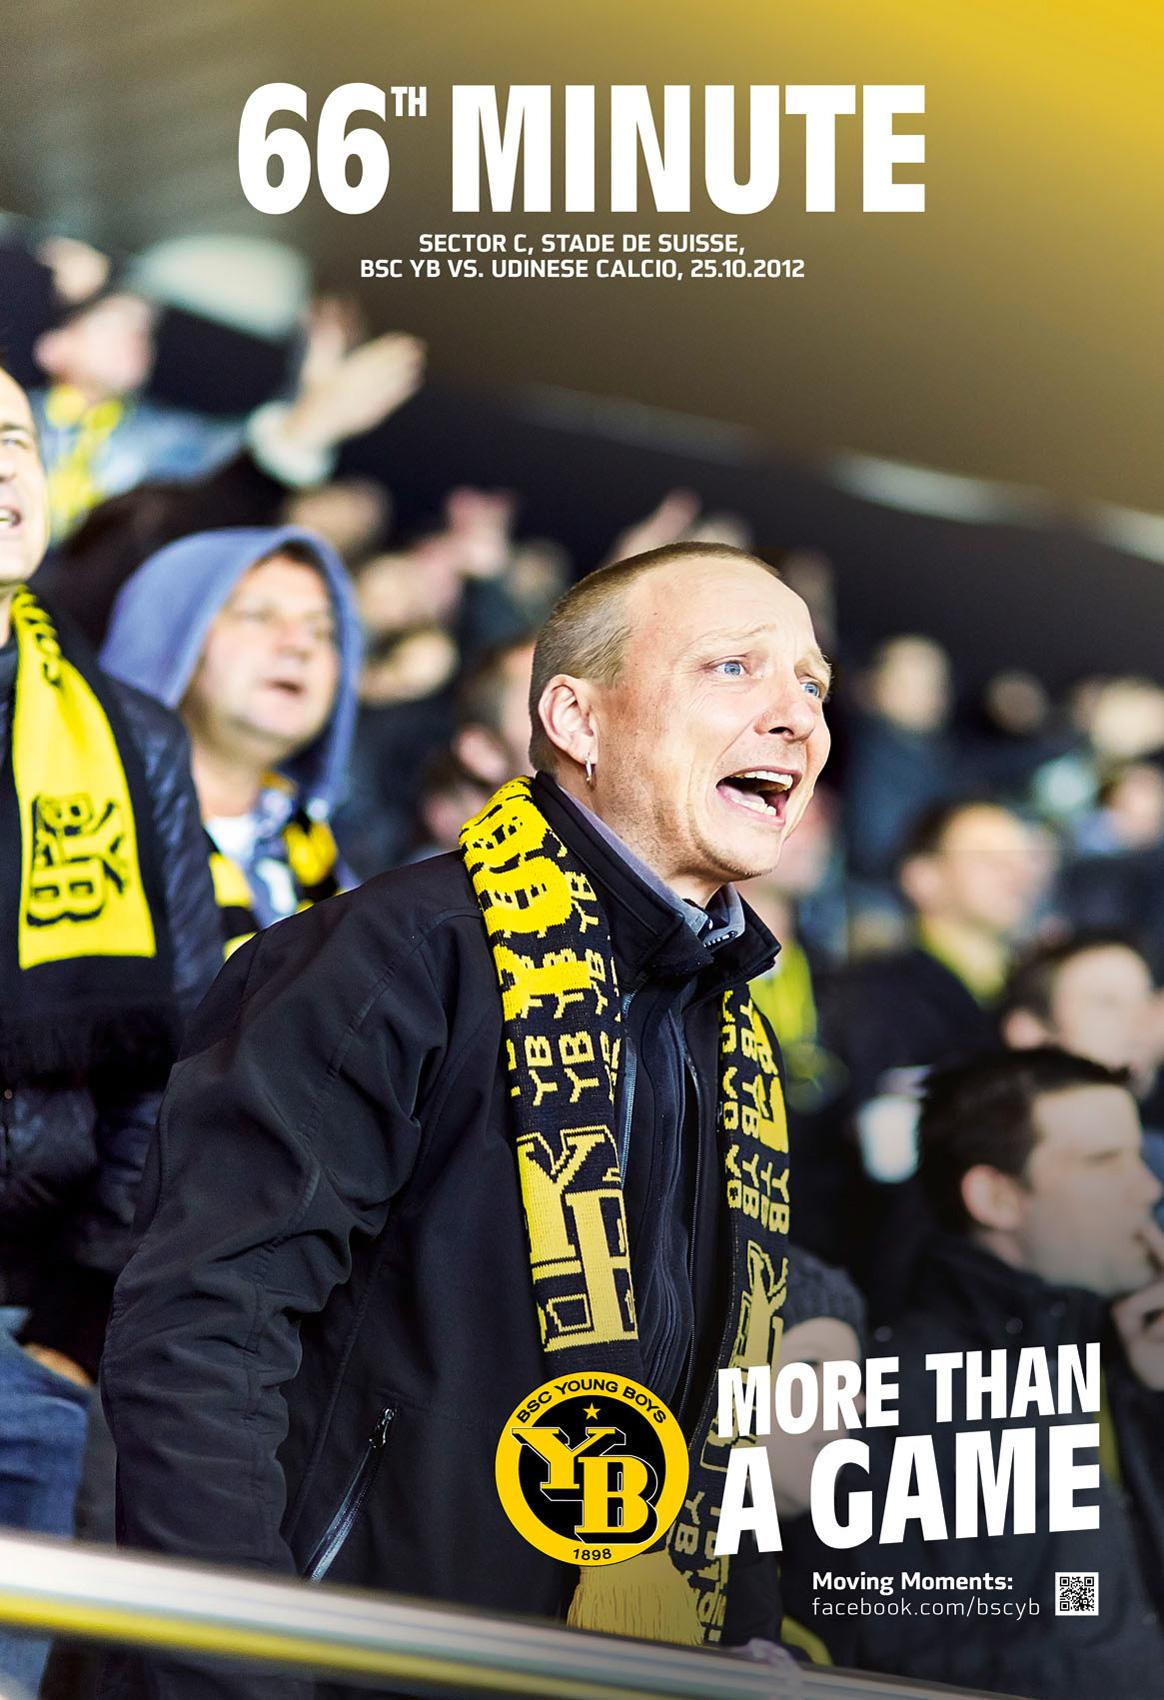 BSC Young Boys Print Ad -  More than a game, 1